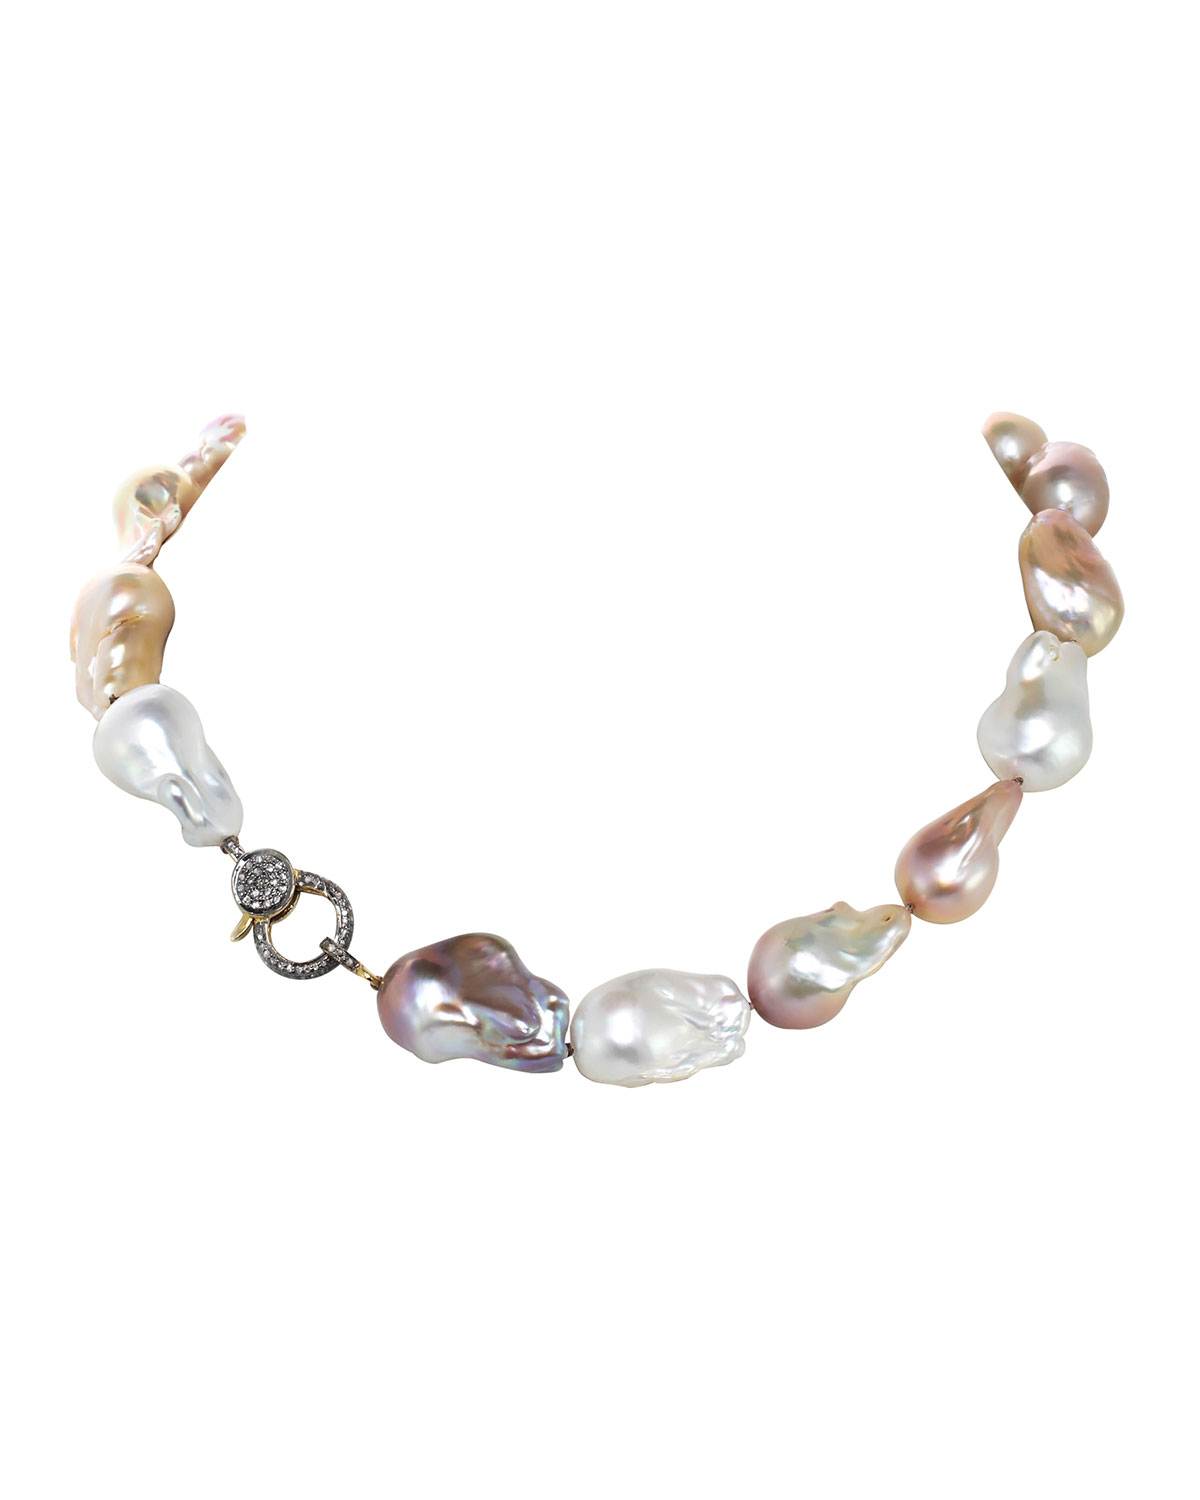 Organic Pink and Natural Baroque Pearls with Diamond Clasp